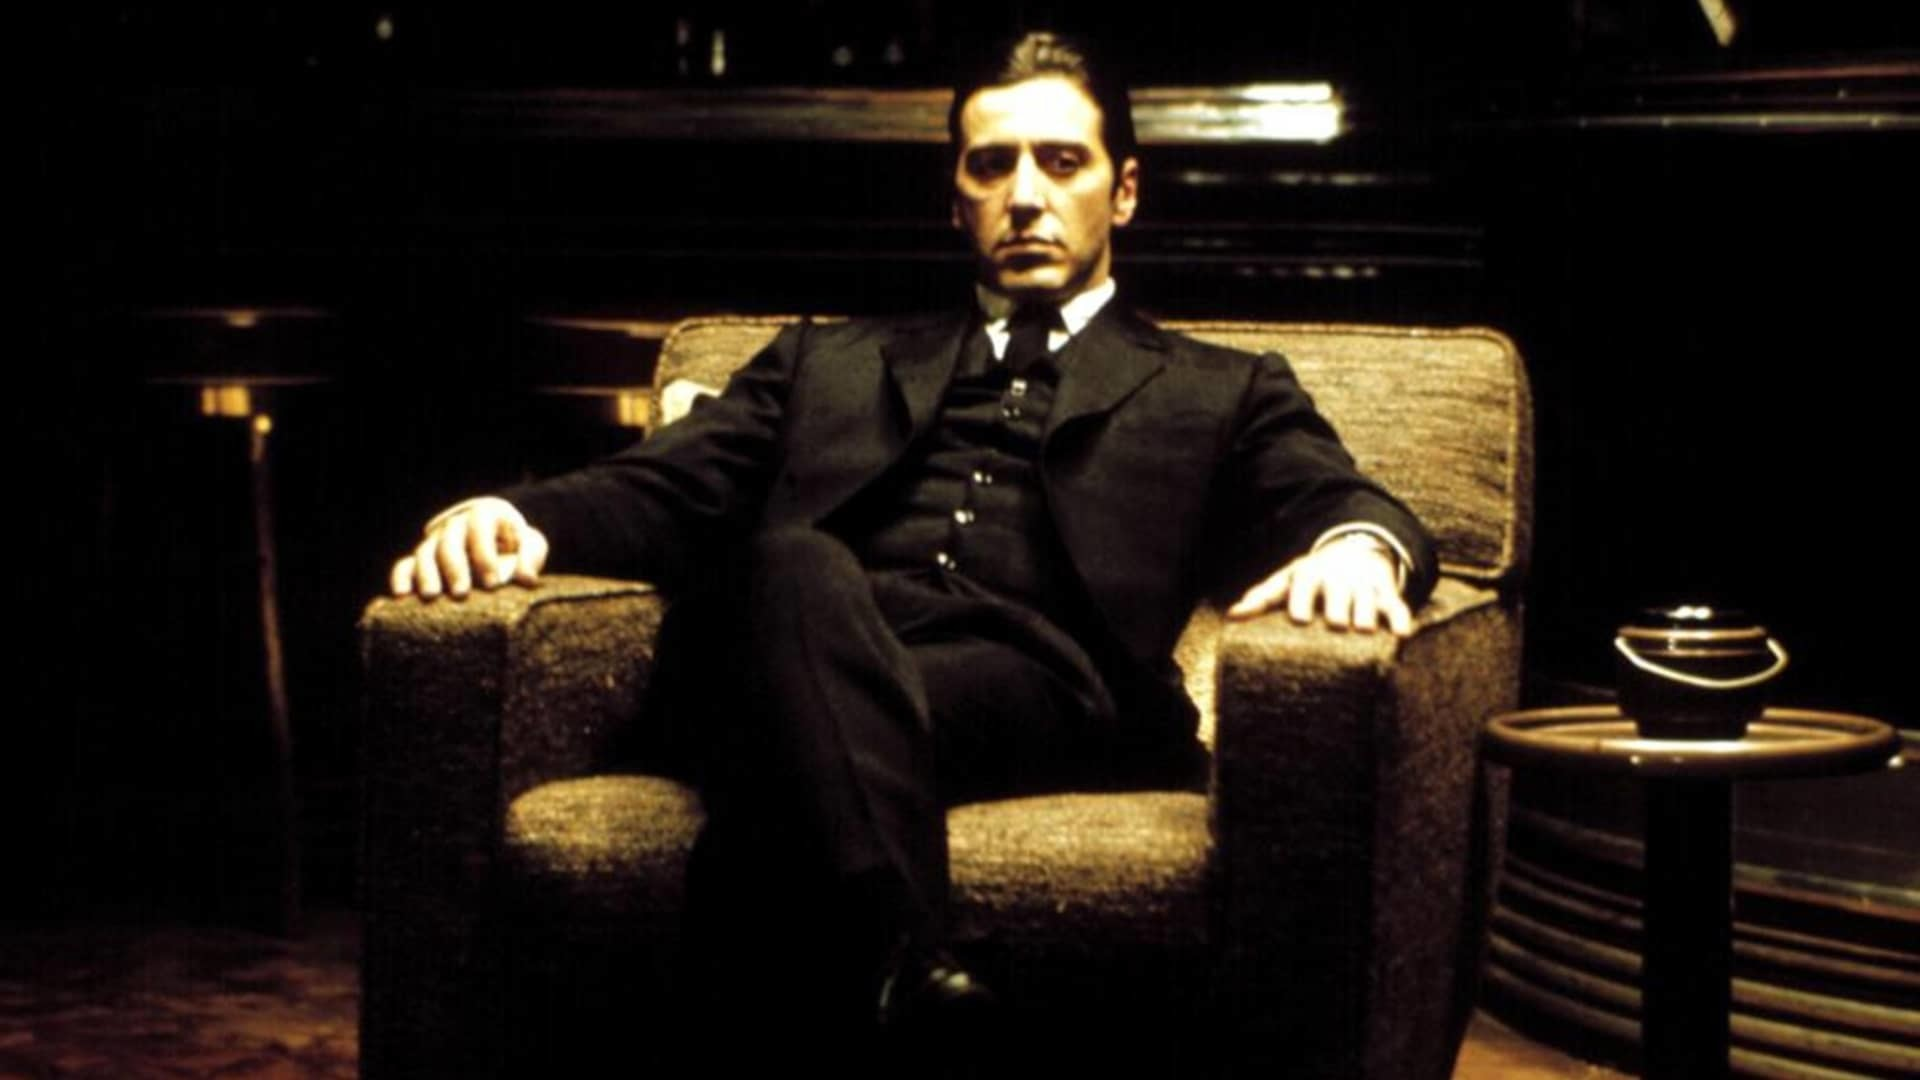 Res: 1920x1080, The Godfather Part Ii 1974 Picture For Desktop - Wallpapers and Backgrounds